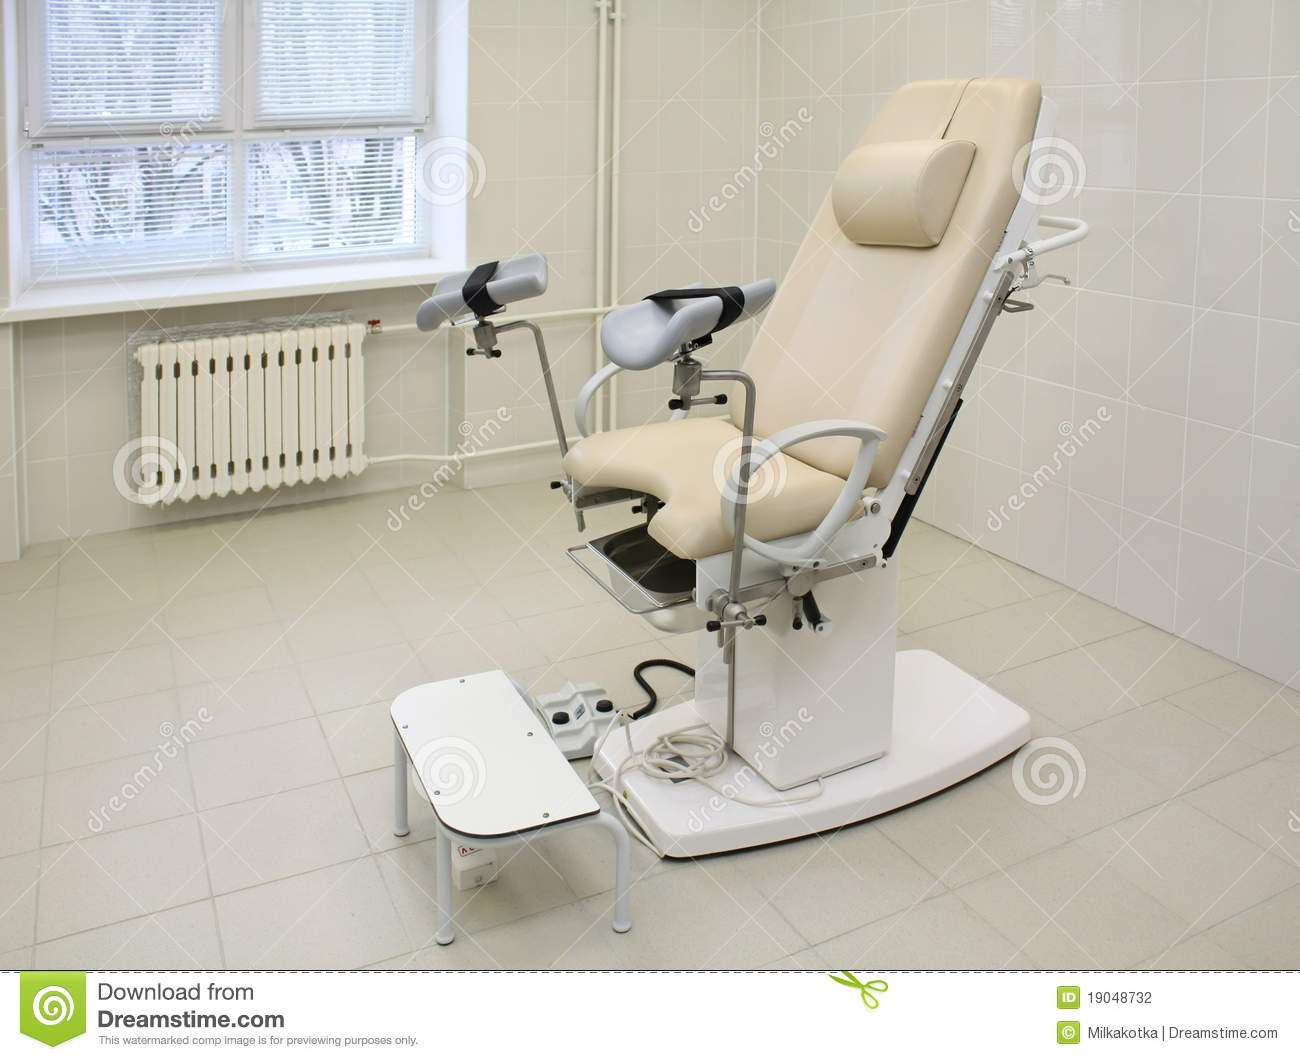 Gynecological Chair In A Medical Office Stock Photography